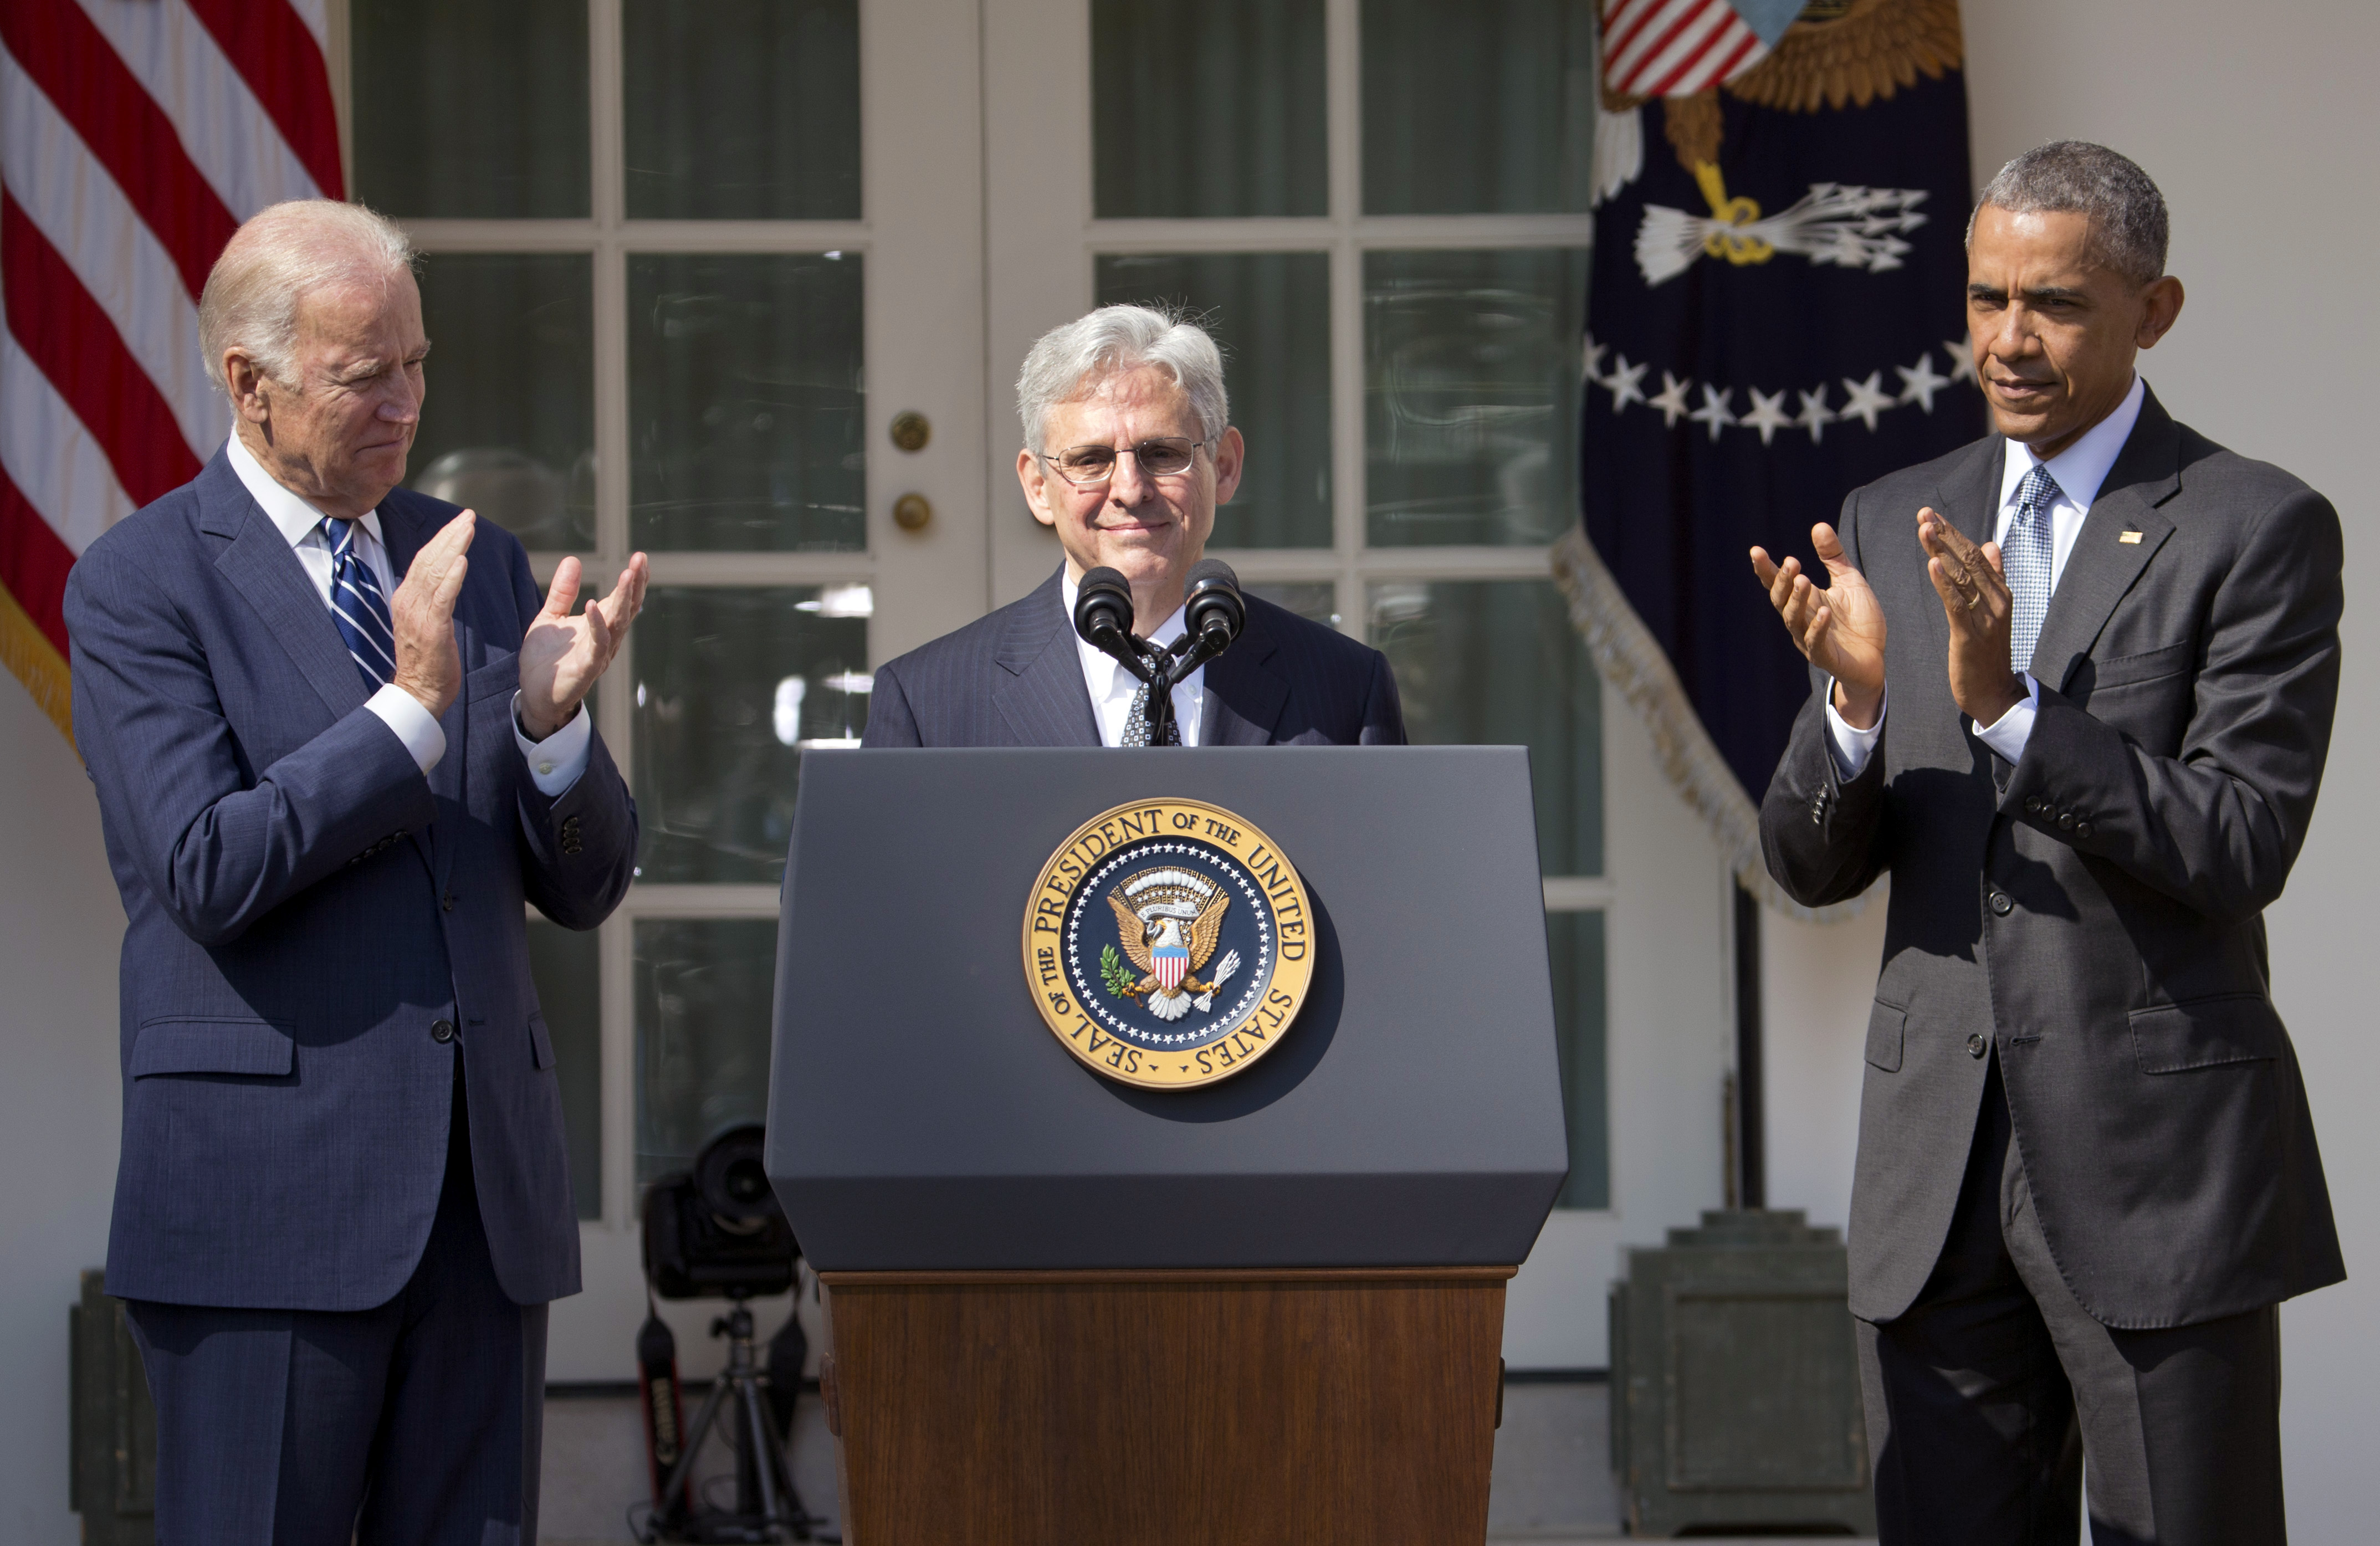 Merrick Garland with Obama and Biden